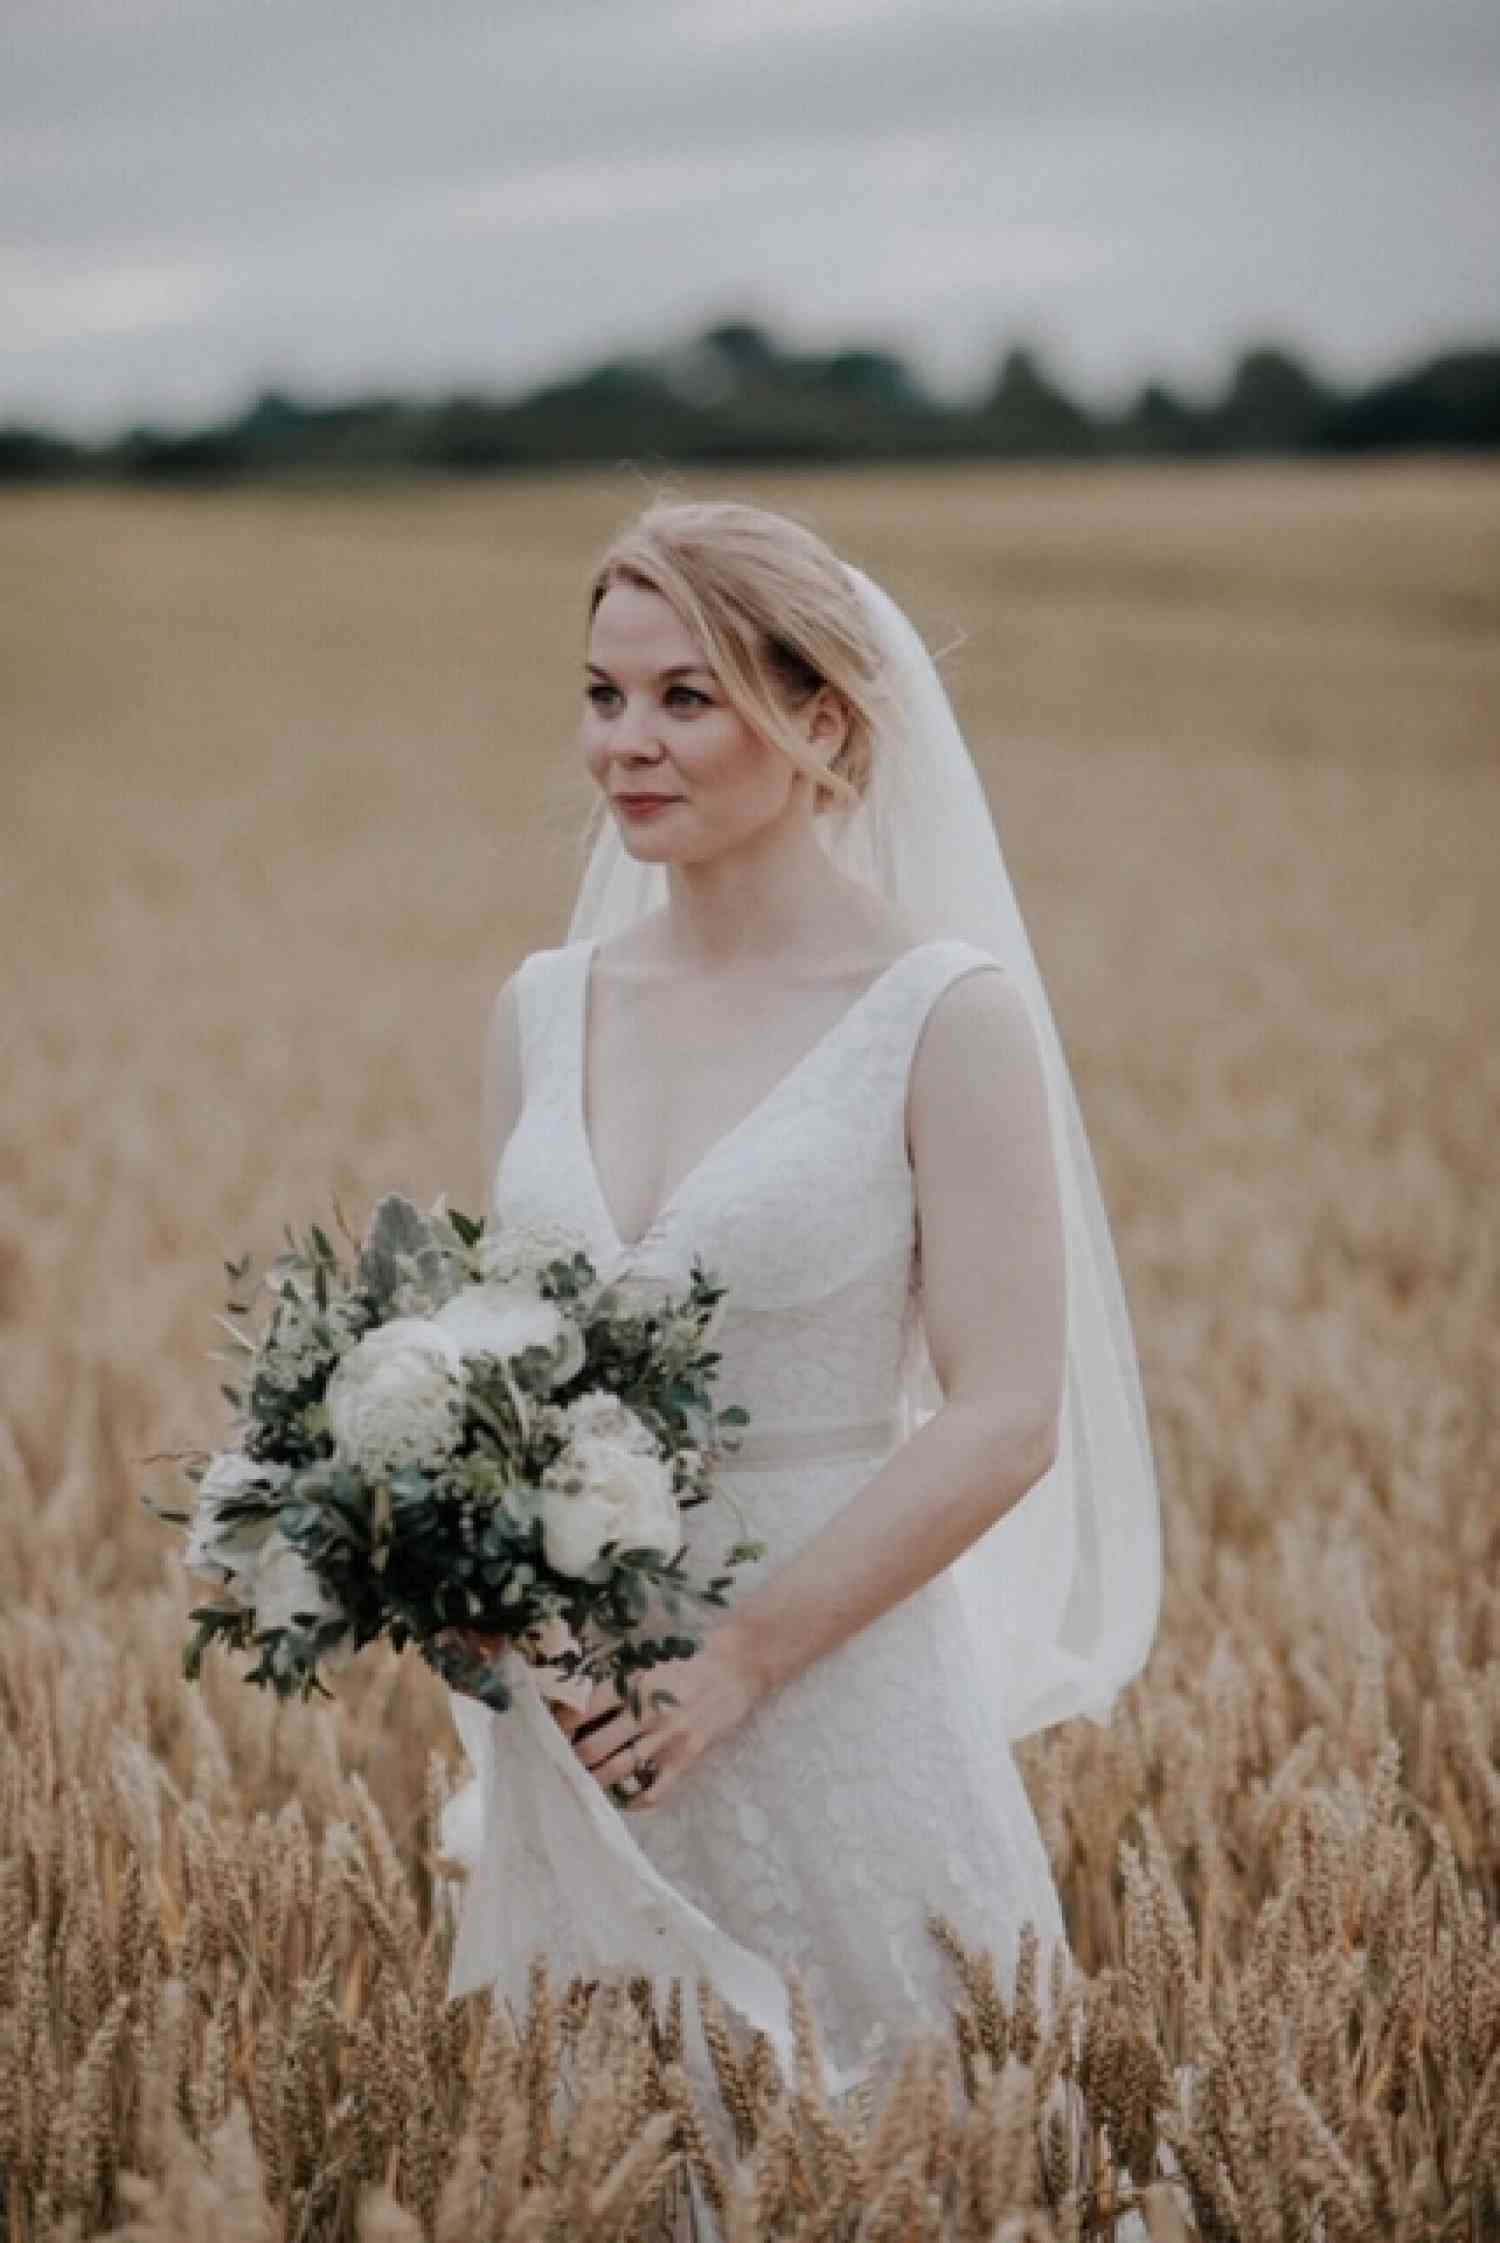 Bride standing in wheat field with white bridal bouquet